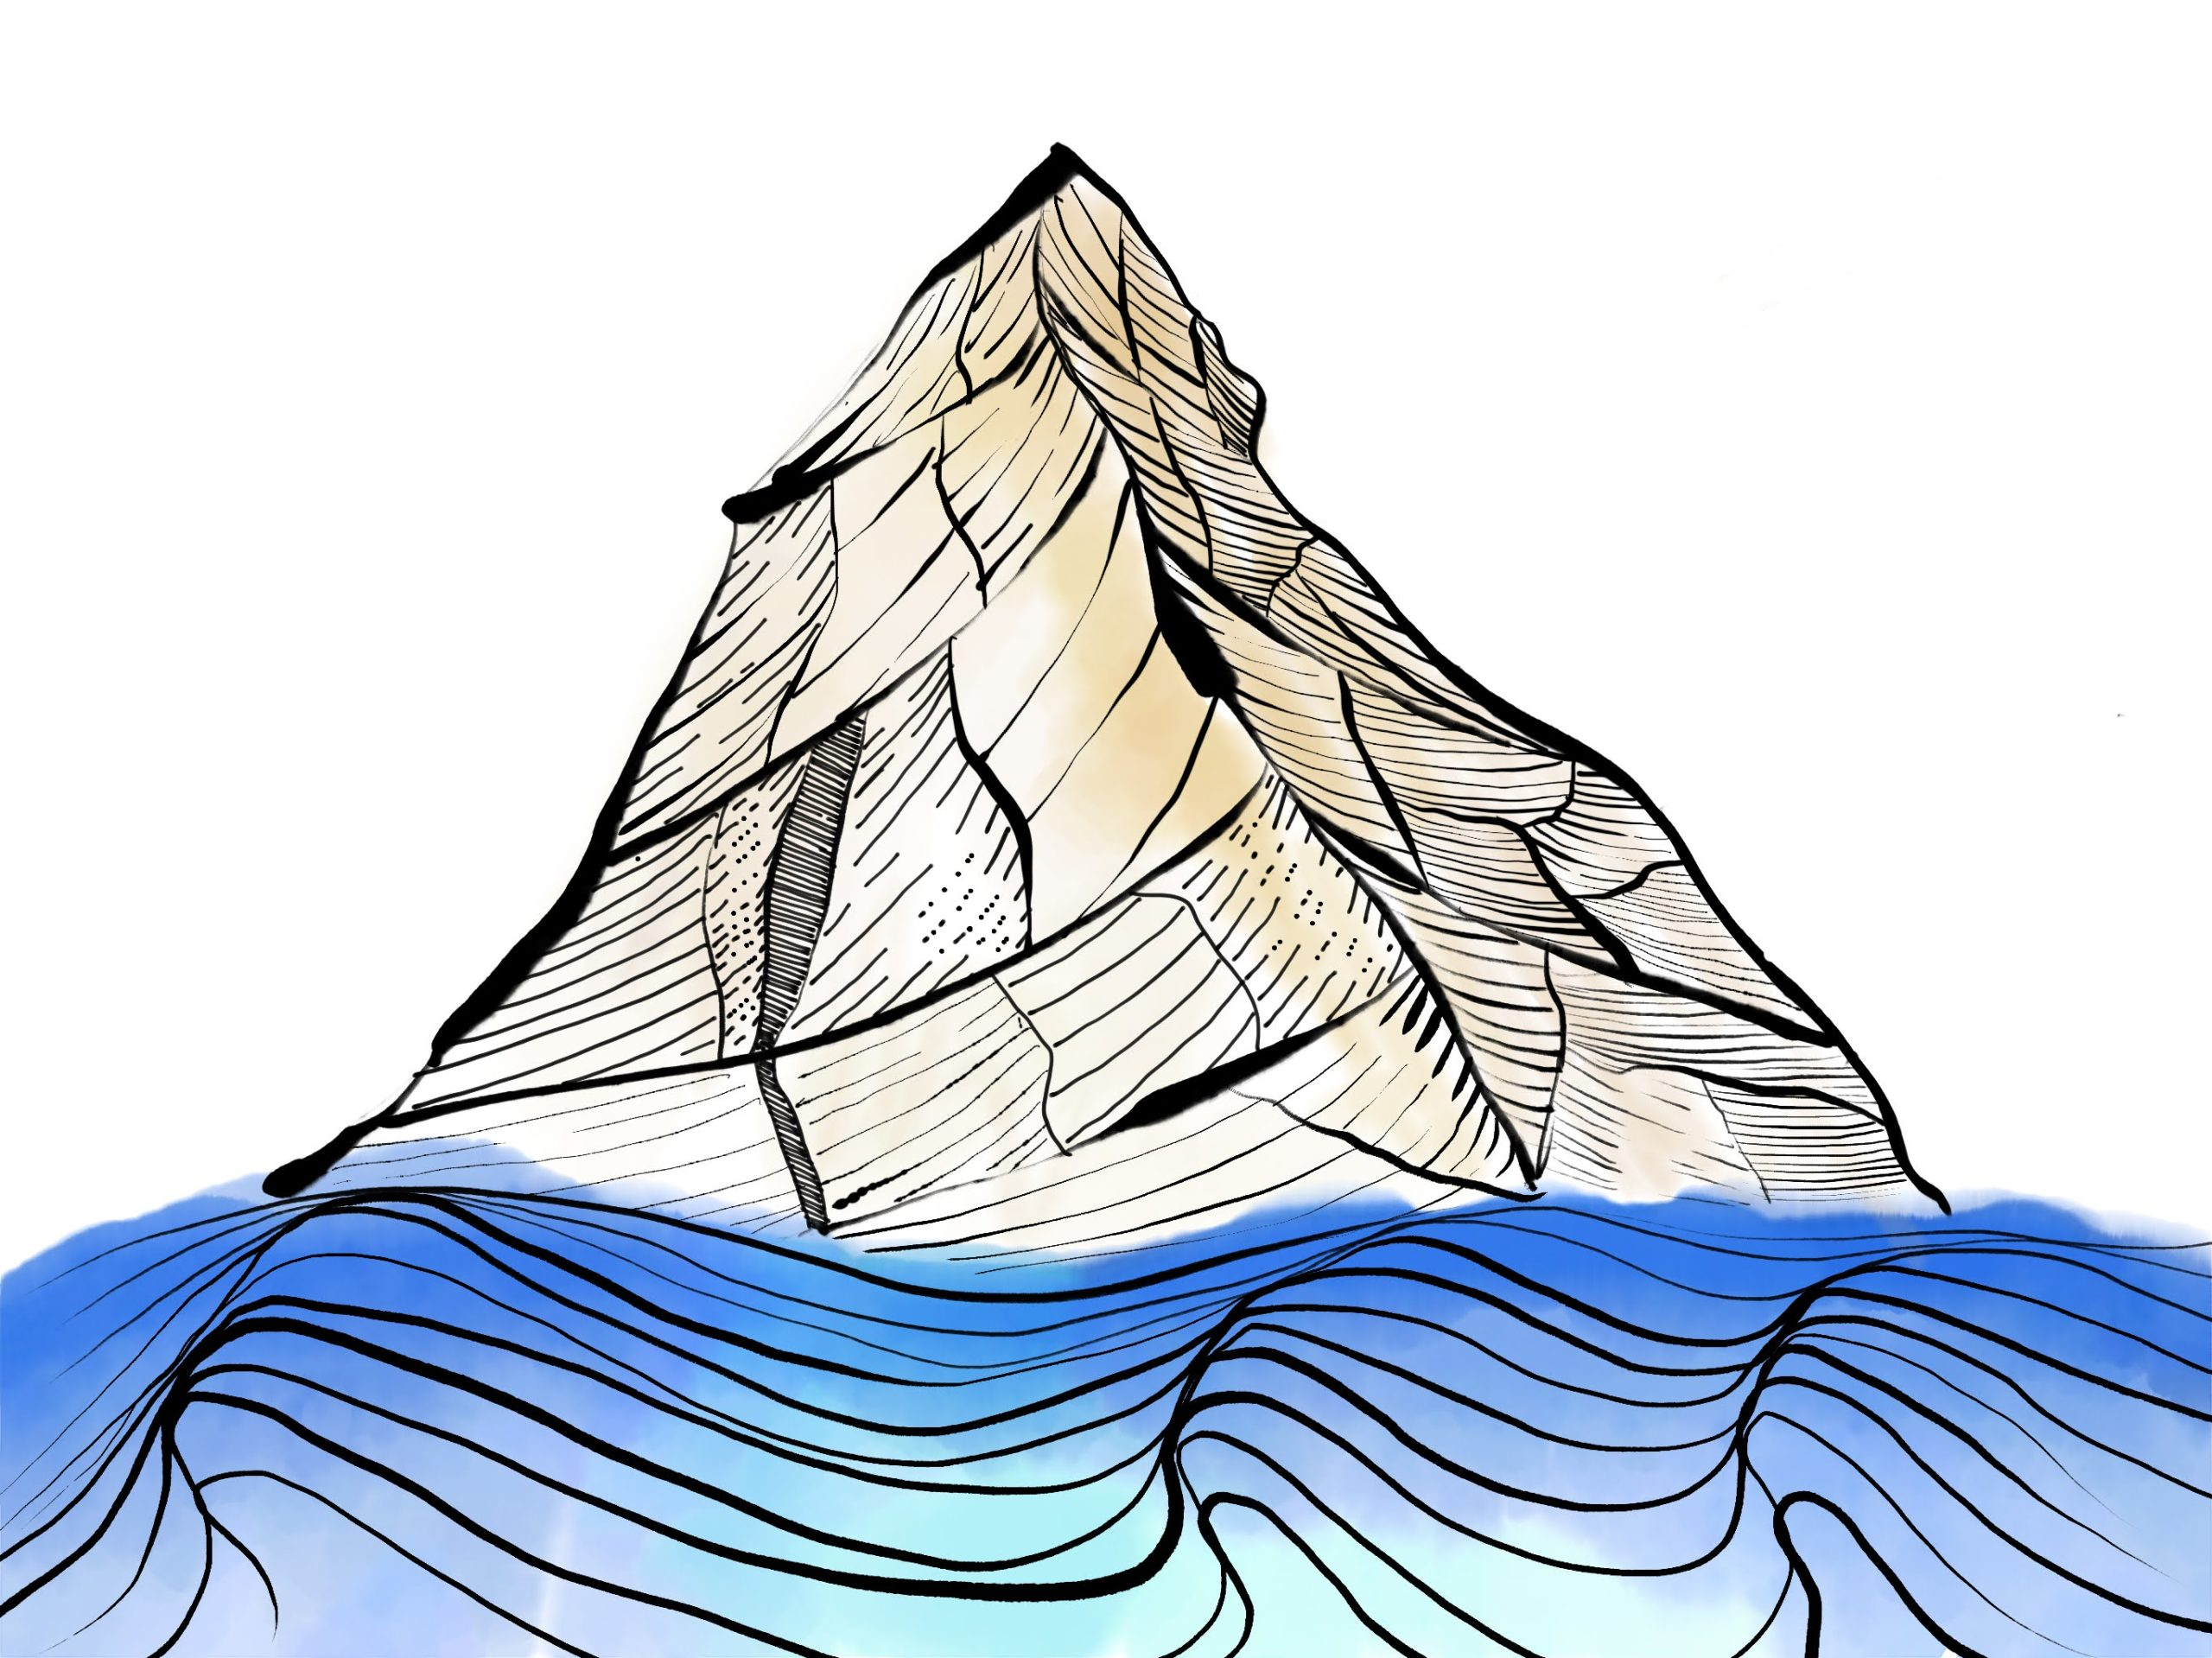 digitally painted mountains and waves